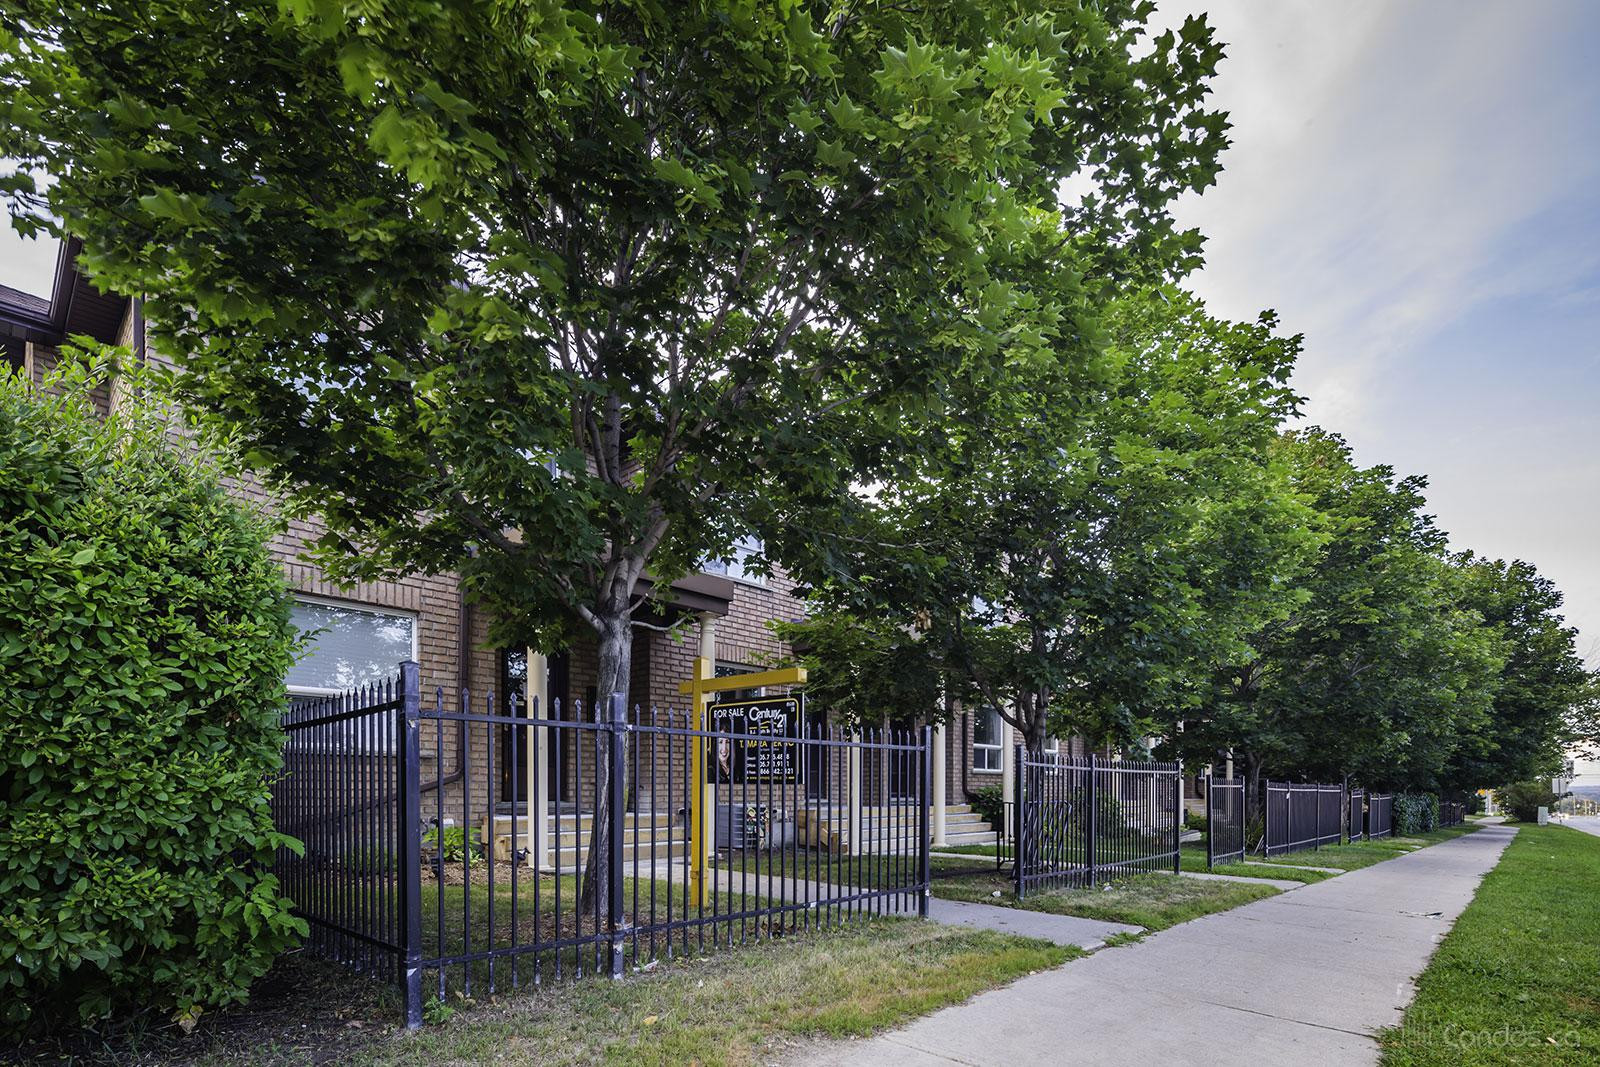 234 Cundles Condos at 234 Cundles Rd E, Barrie 1